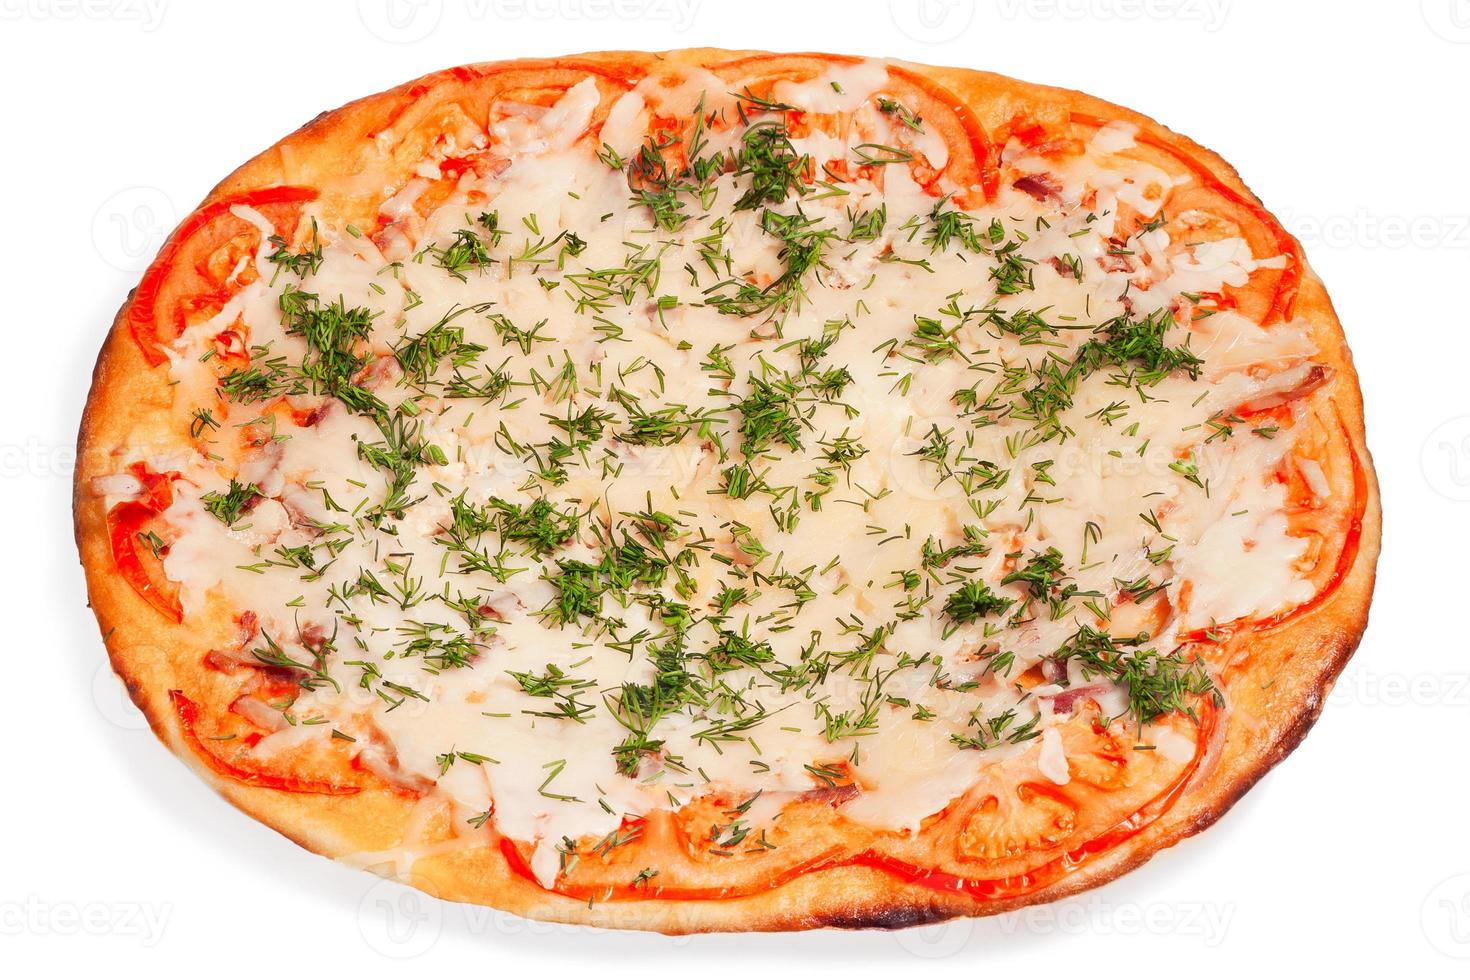 pizza ovale au fromage photo